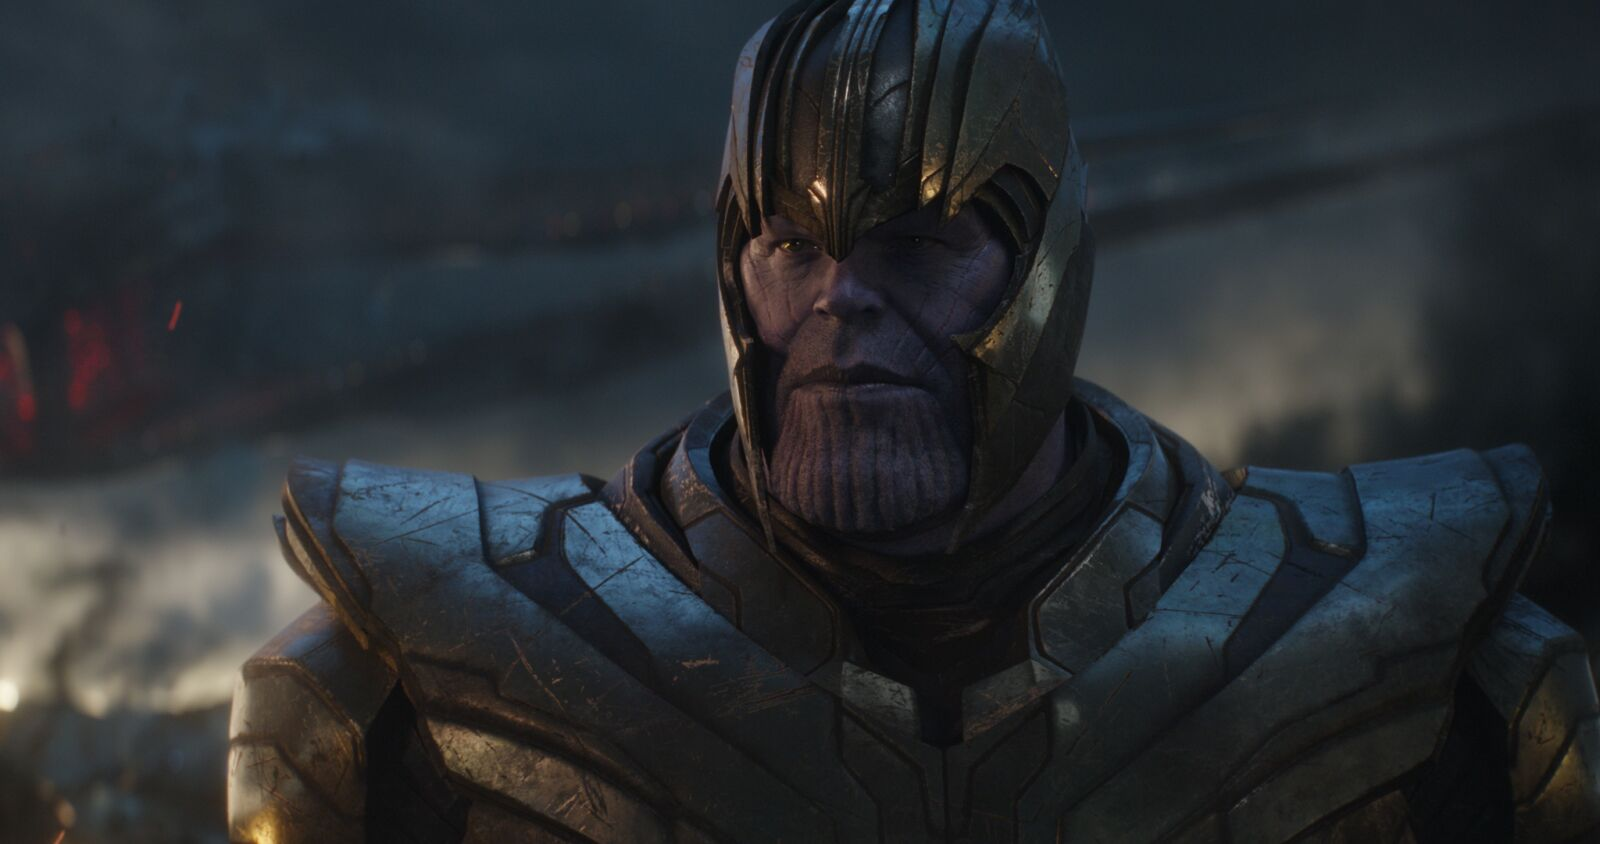 Joe Russo reveals the clever hidden message behind Thanos' plans